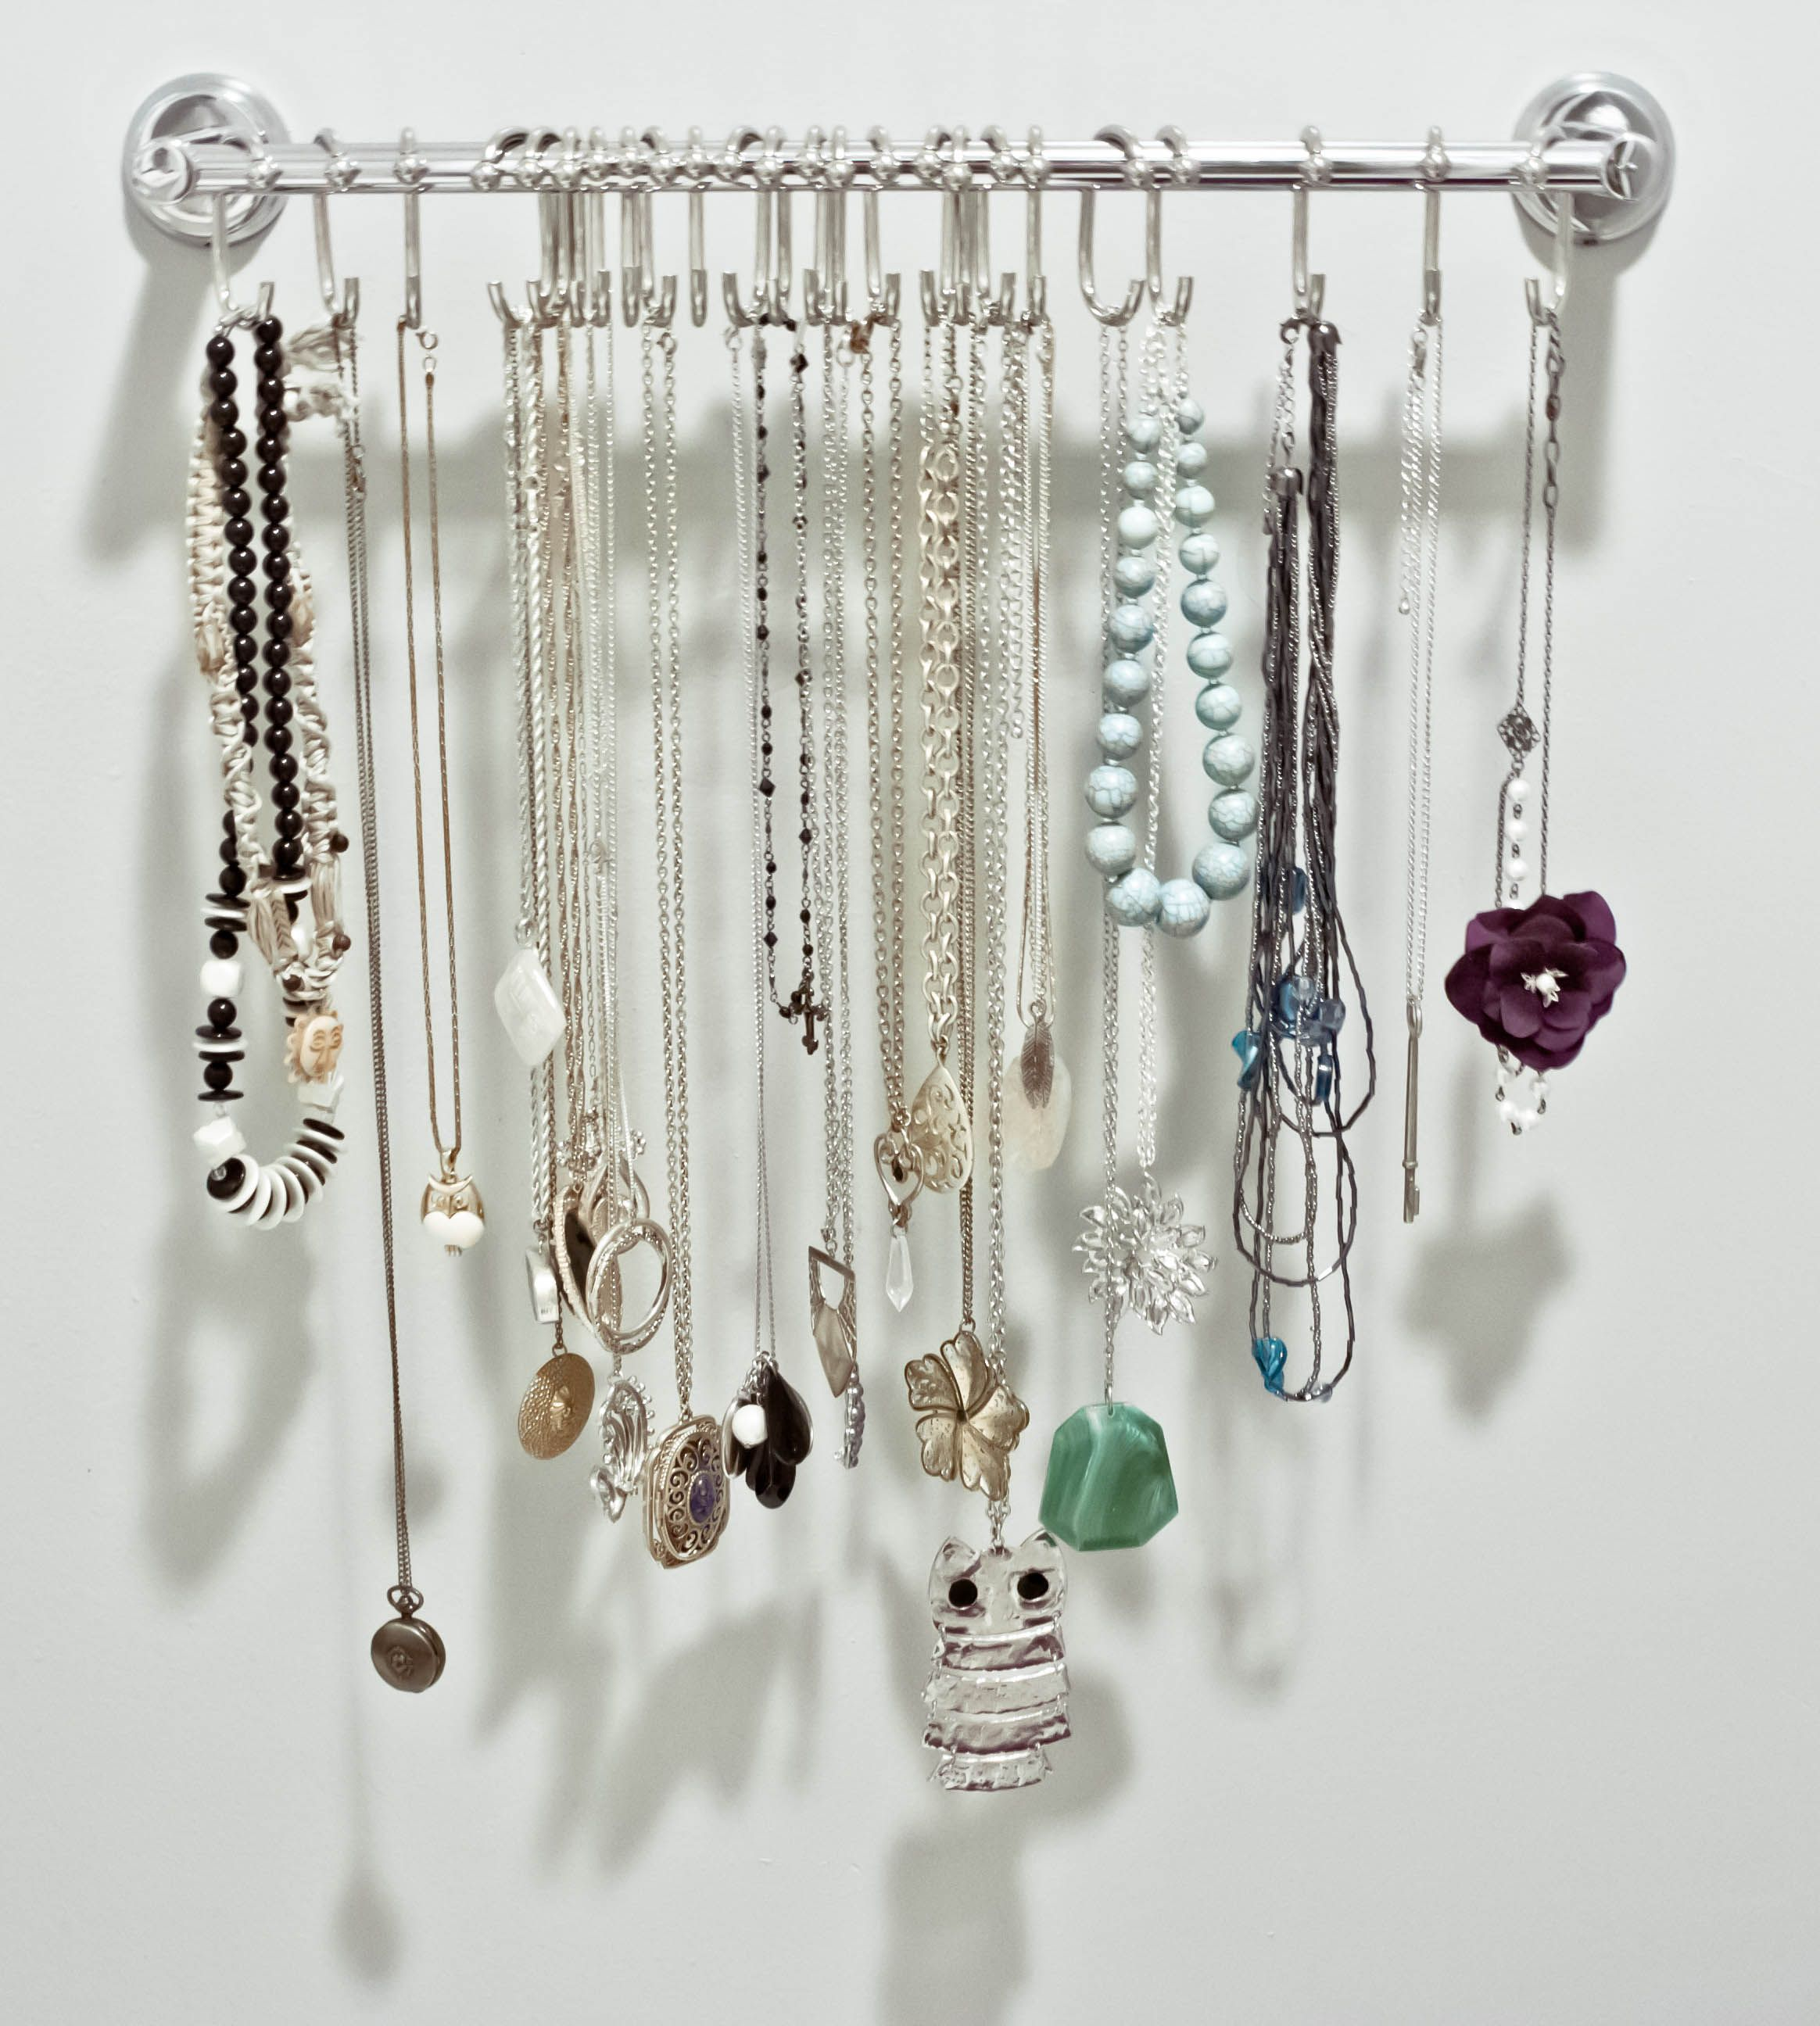 Jewelry Organizer Diy Jewelry Organizer Diy Jewelry Organizer Organizations And